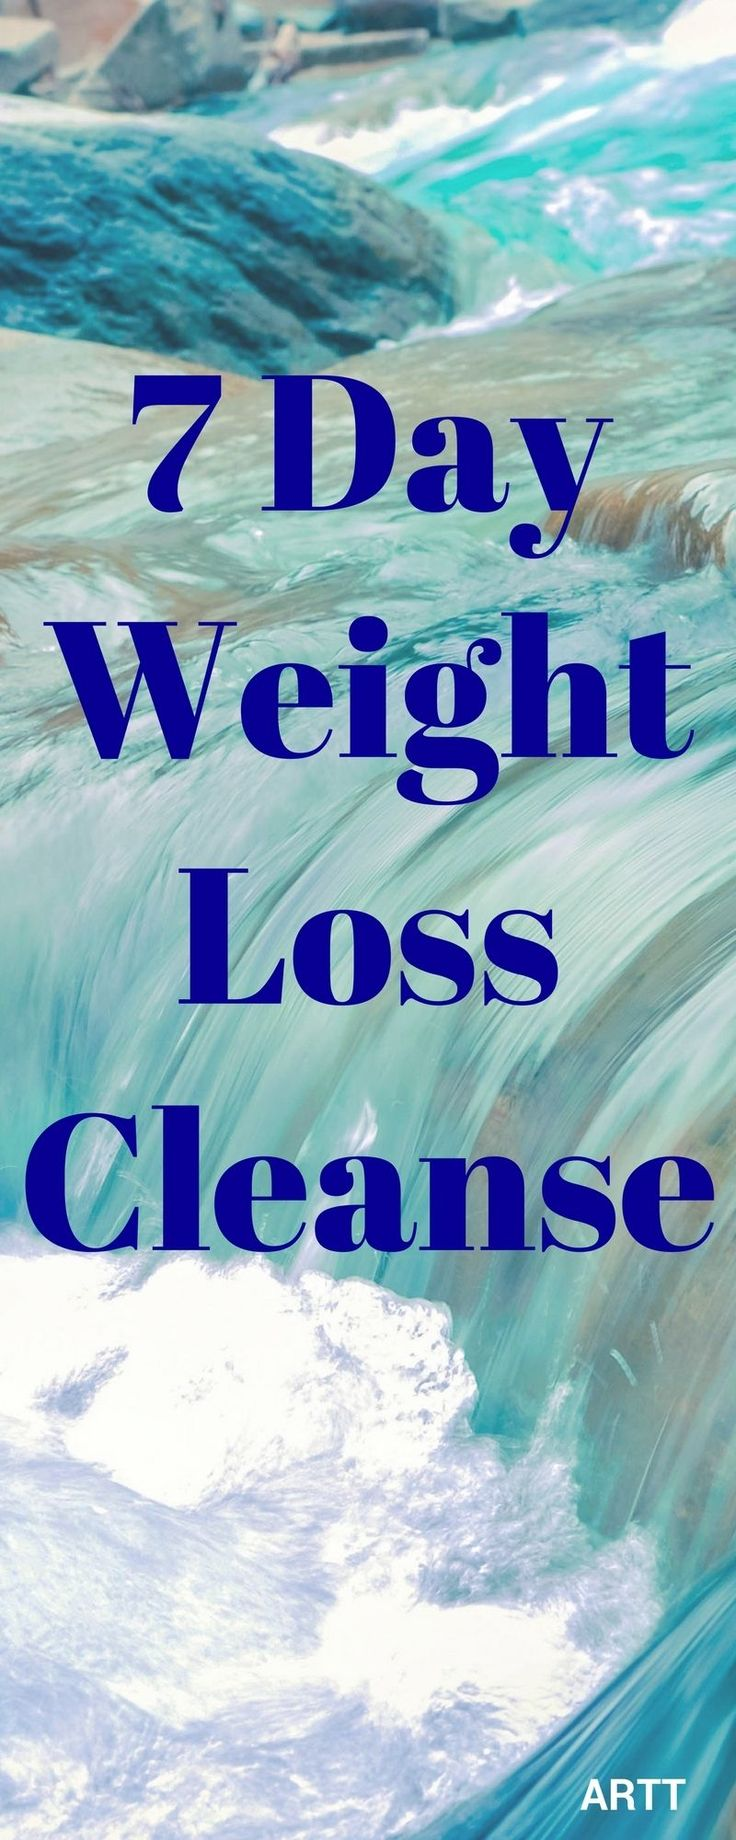 Best 25 9 day cleanse ideas on pinterest isagenix 30 day best 25 9 day cleanse ideas on pinterest isagenix 30 day cleanse 14 day detox cleanse and isagenix 9 day cleanse malvernweather Image collections